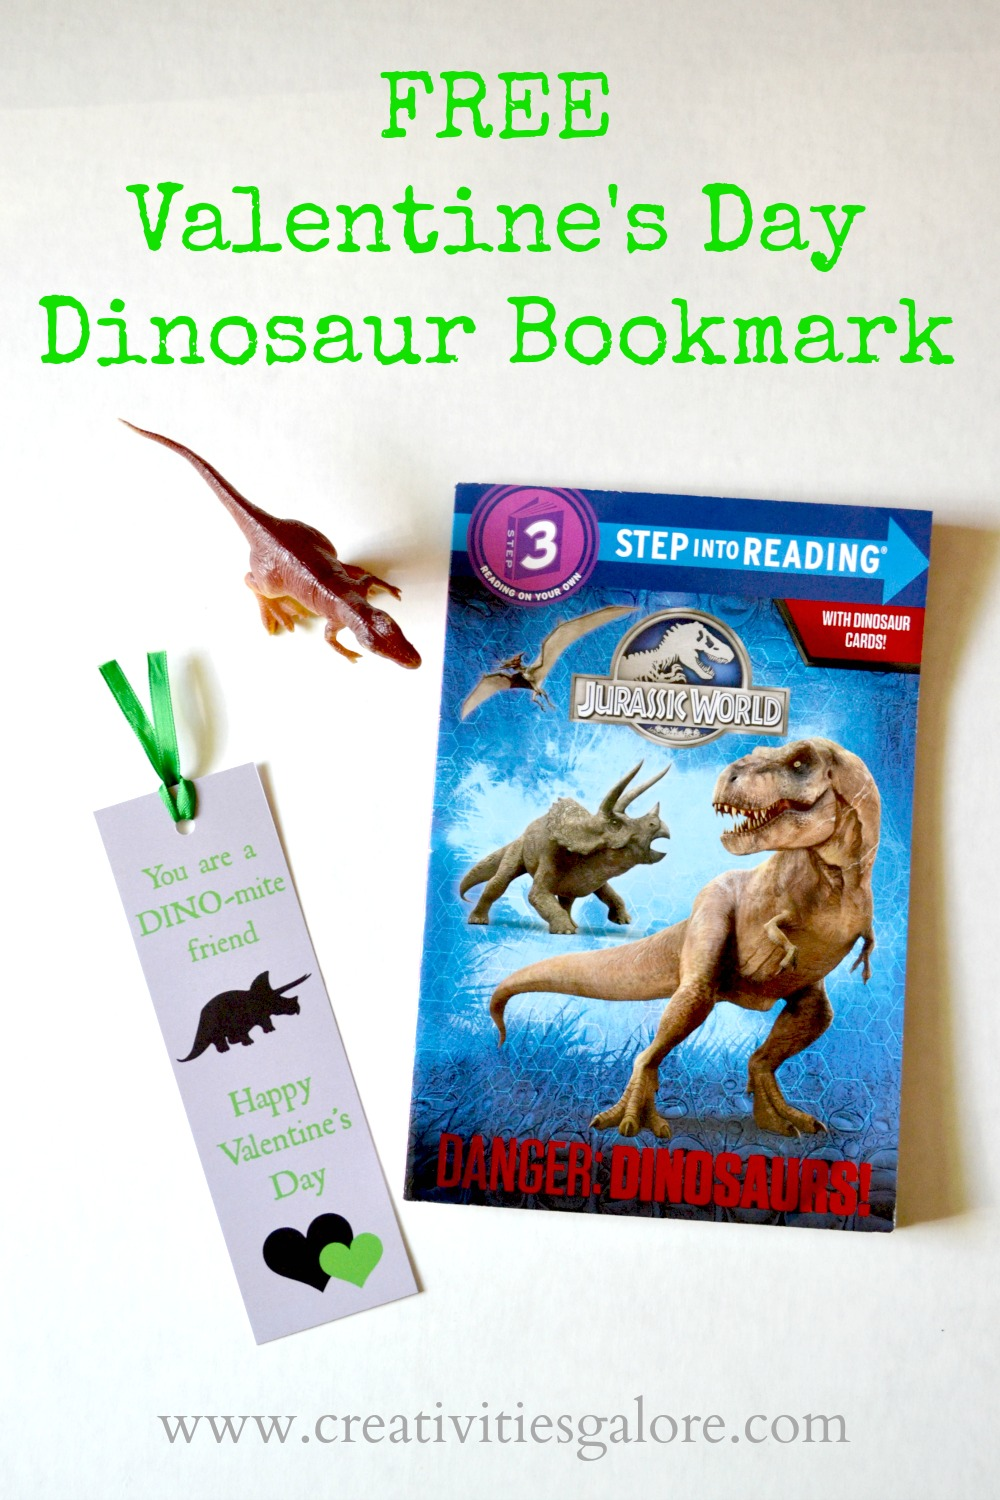 Free Valentine's Day Dinosaur Bookmark by Creativities Galore: This week's party gals linky party is bursting with lovely Valentine's Day inspiration from party ideas to free printables. Come check out the lovely ideas